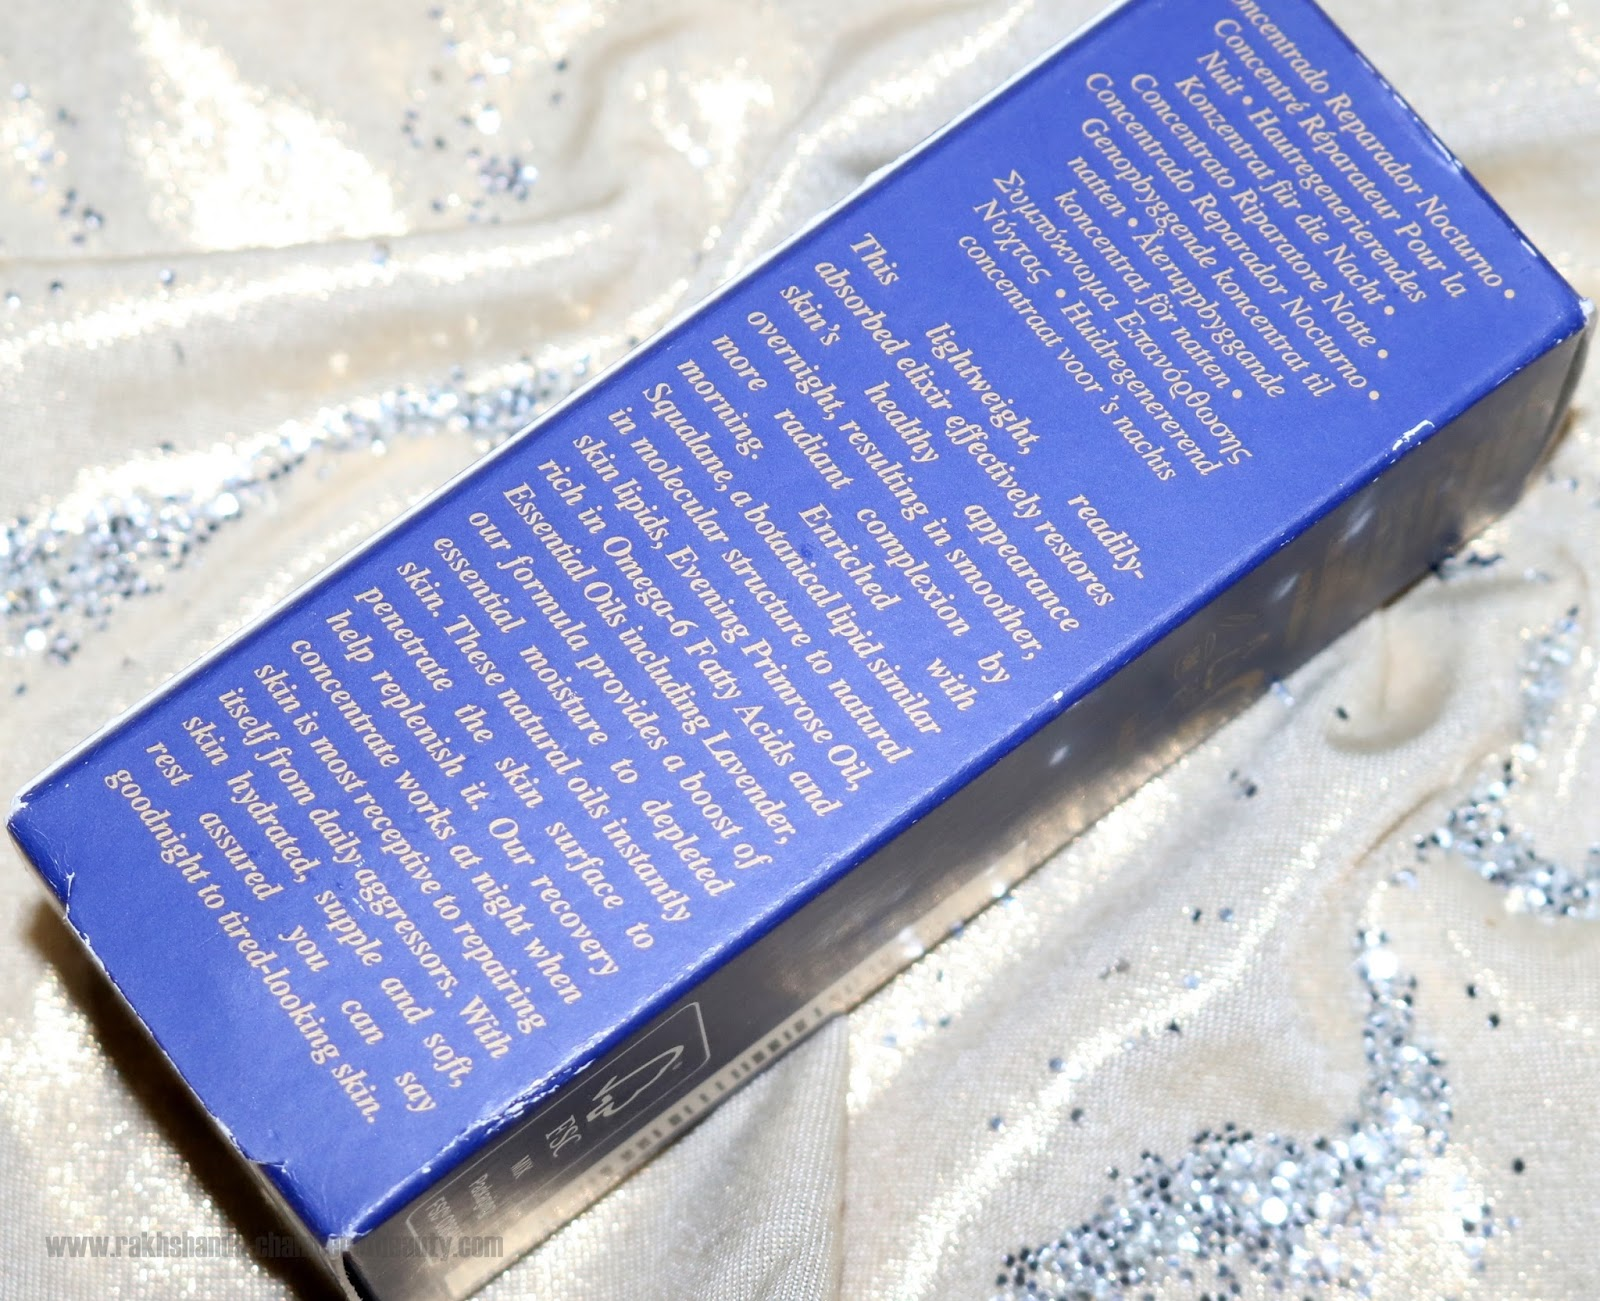 Kiehl's recovery concentrate, Best serum in India, Indian beauty blogger, Kiehl's Midnight Recovery Concentrate Review